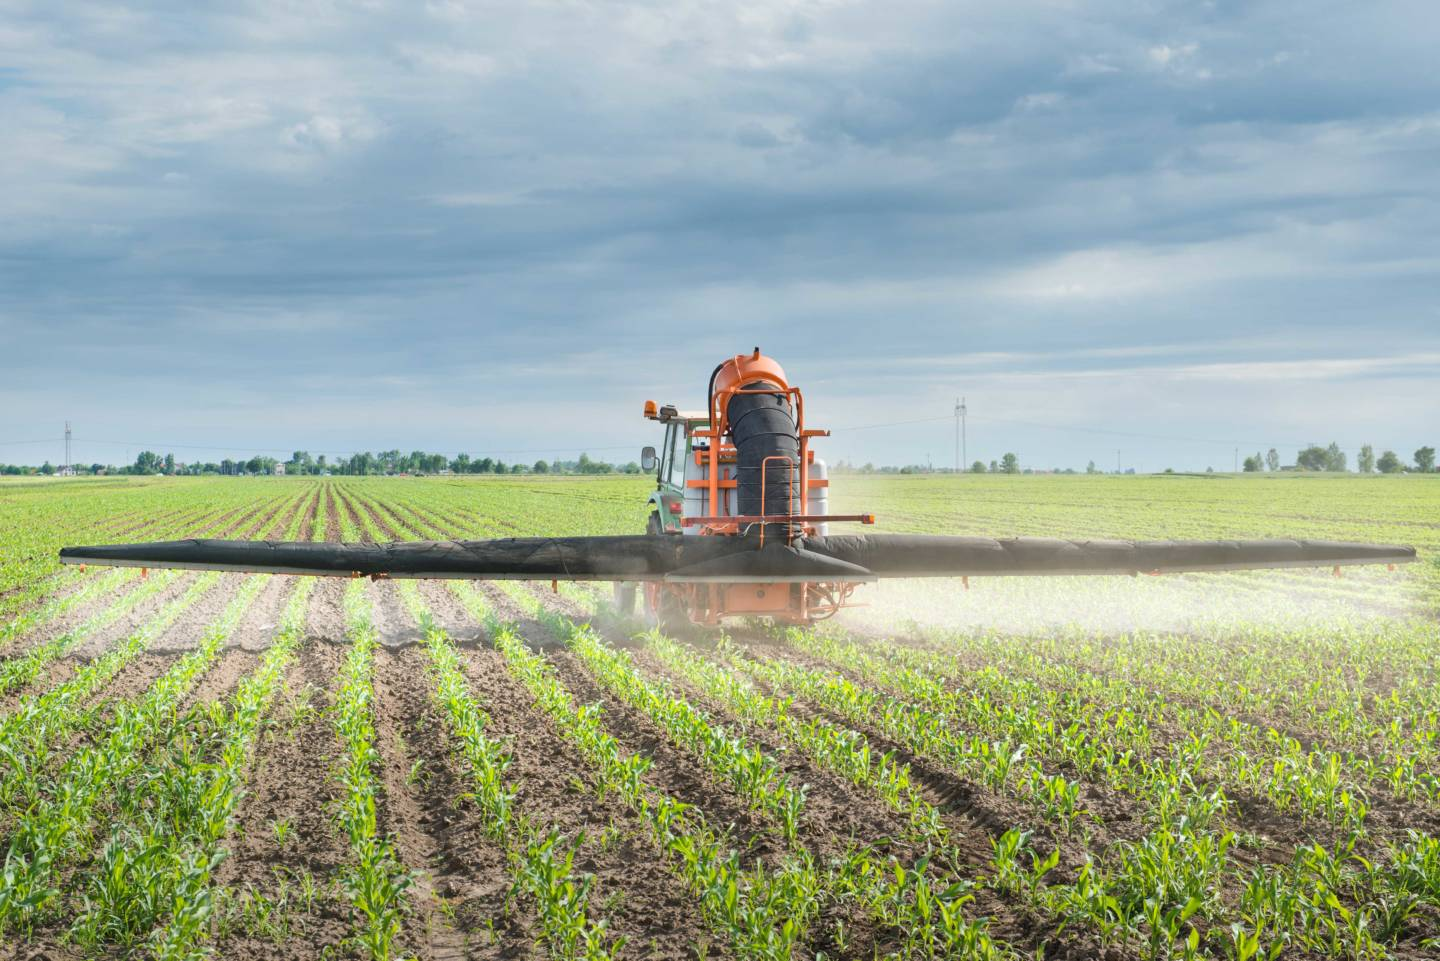 EWG Report: 8 Million Californians Now Drinking Water Tainted With Toxic TCP Pesticide